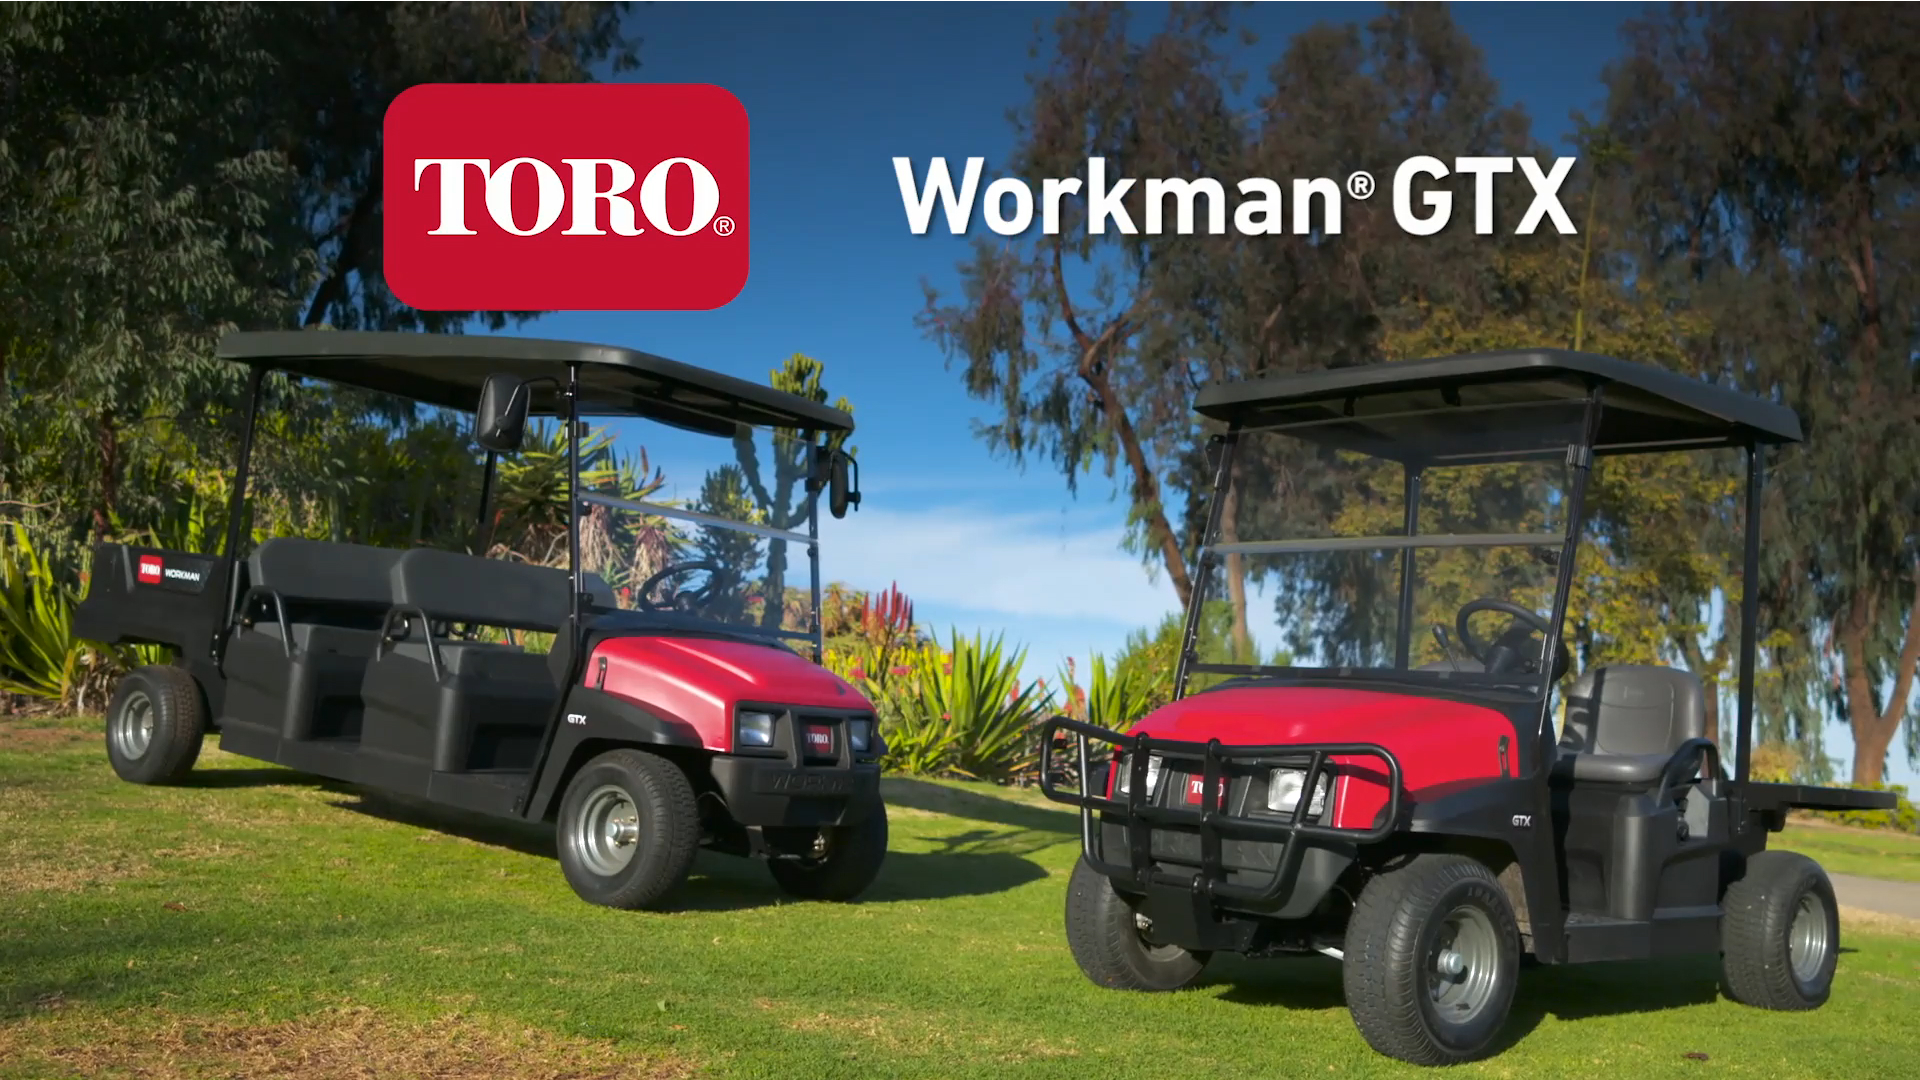 Toro® Workman® GTX Utility Vehicles